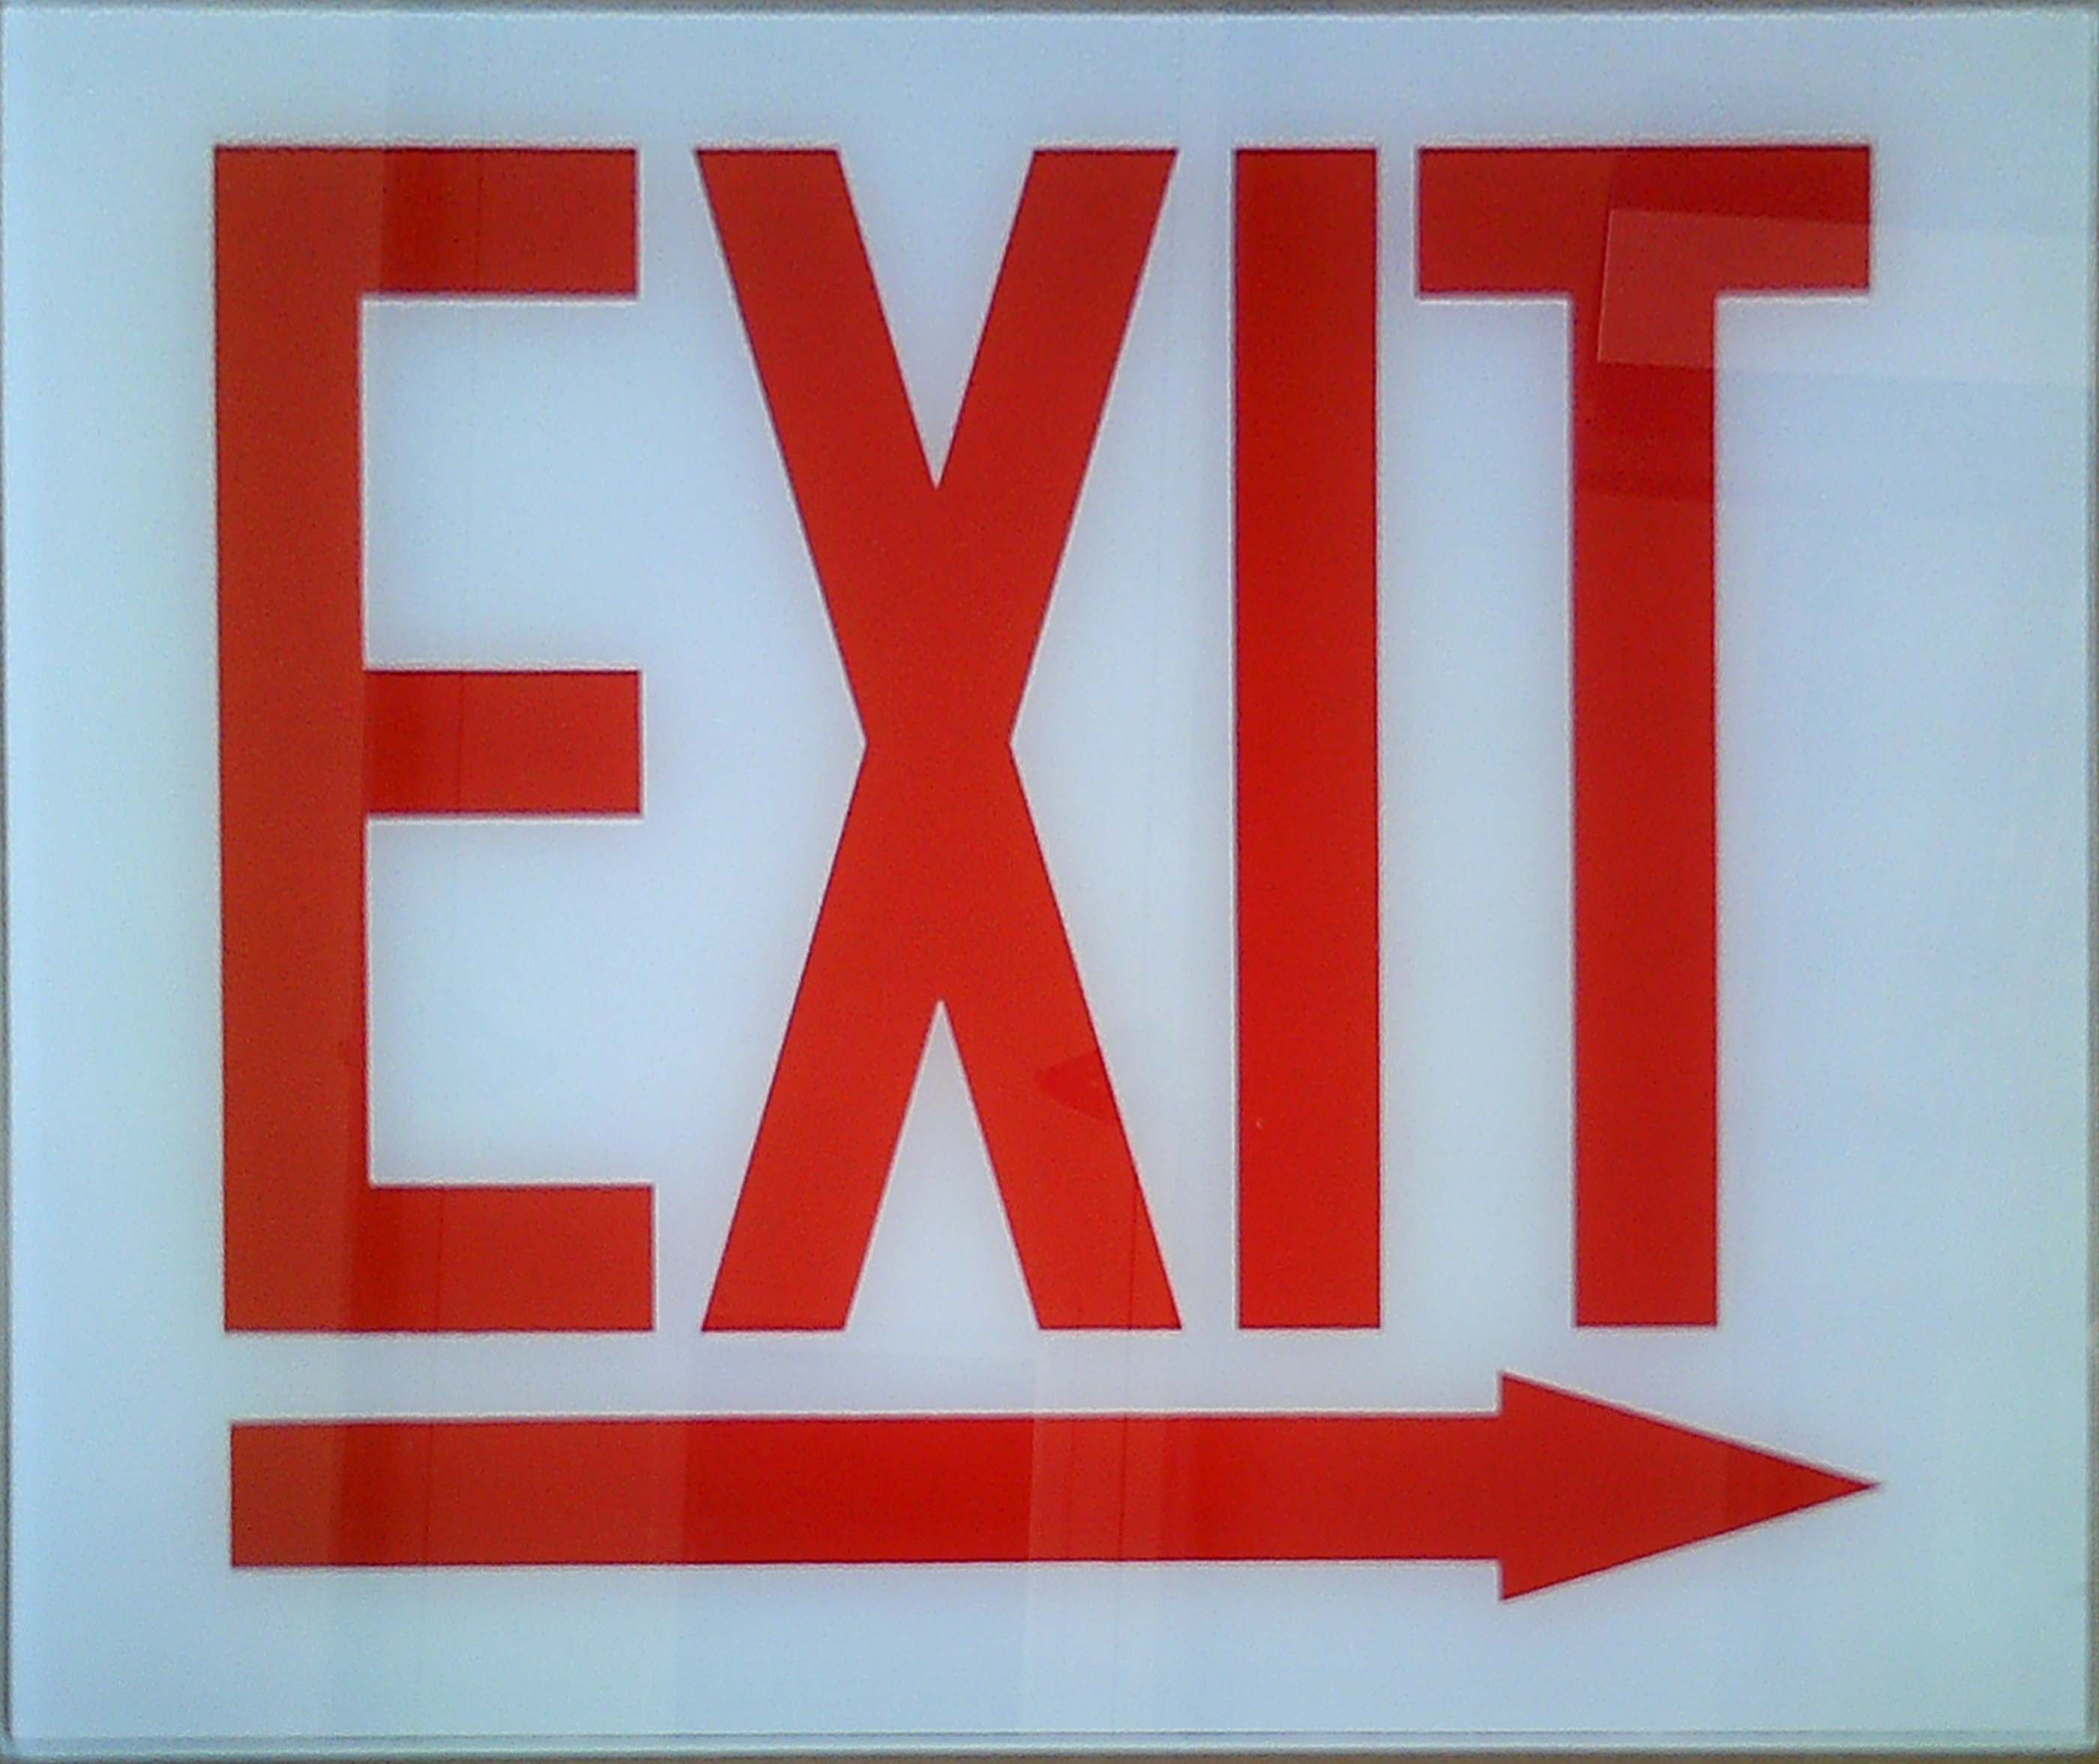 Image logo for Exit Sign - Glass Replacement Sign: EXIT (Right Arrow)